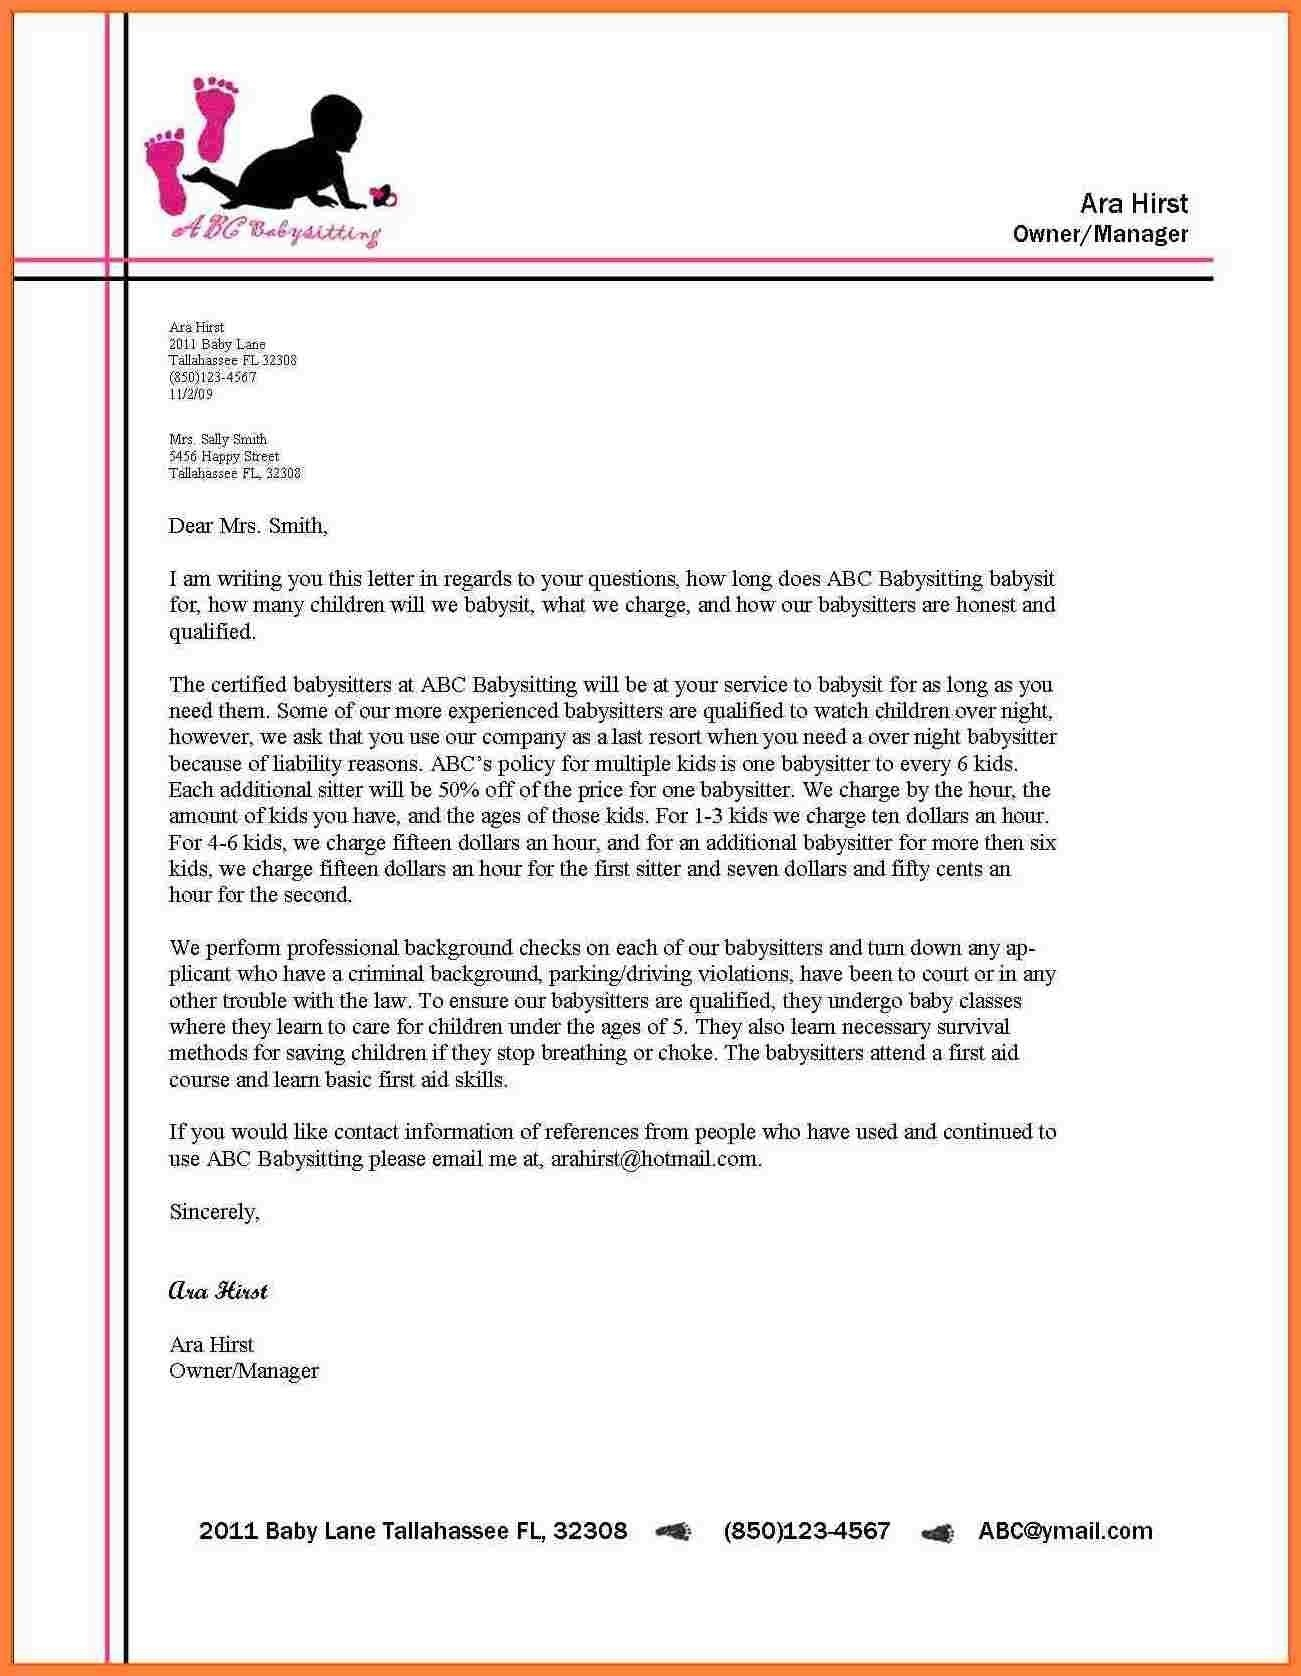 Example Of A Business Letter With Letterhead Filename – reinadela